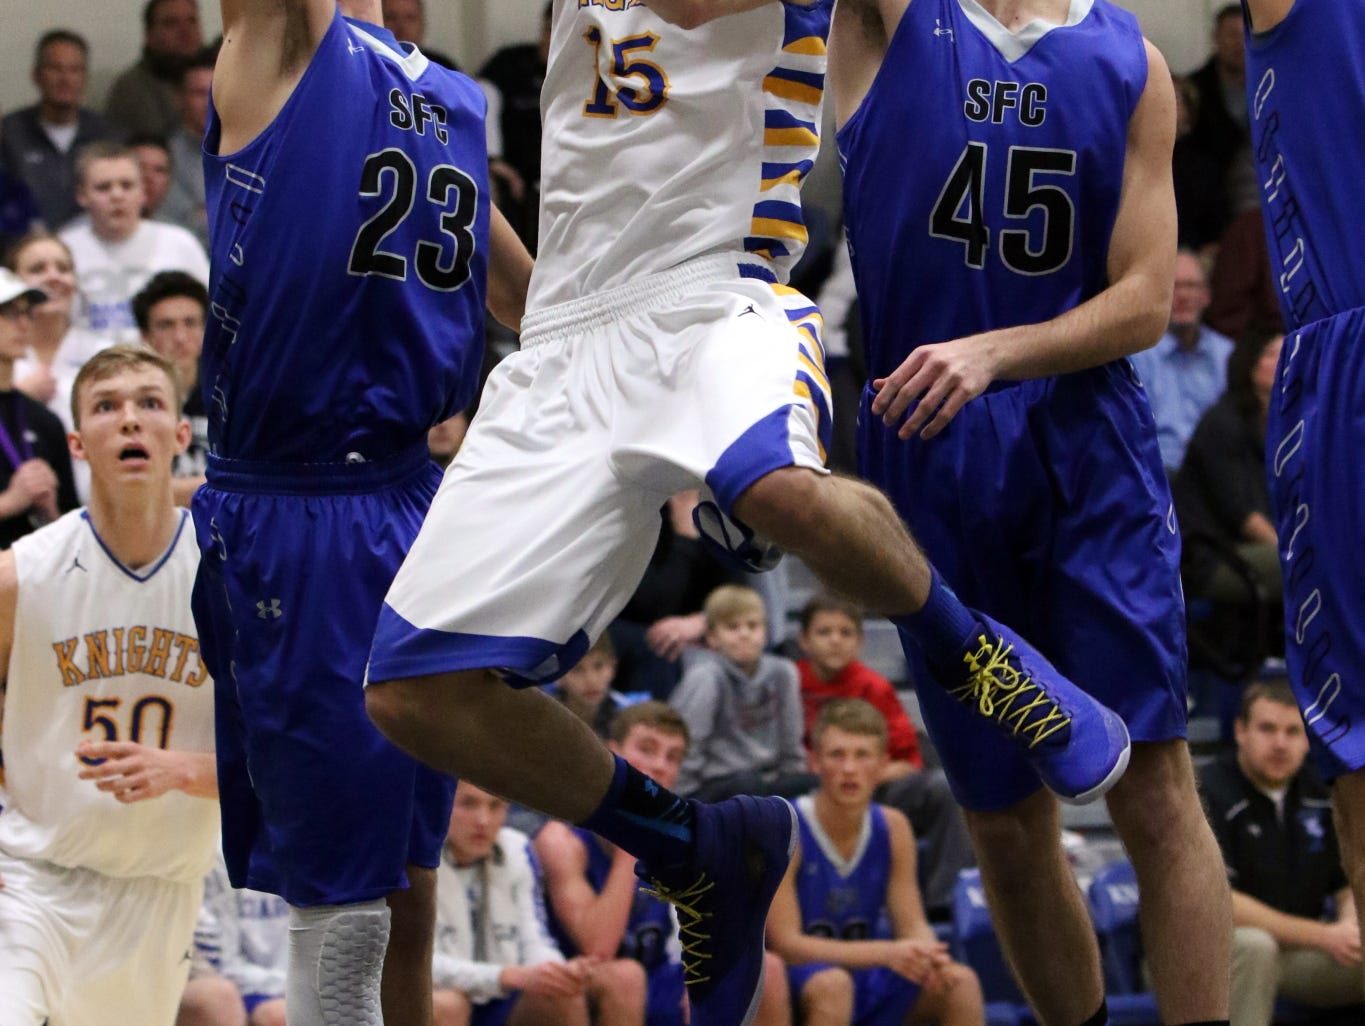 Joey Messler of O'Gorman gets past several SF Christian defenders to put a shot during Tuesday's game at O'Gorman.